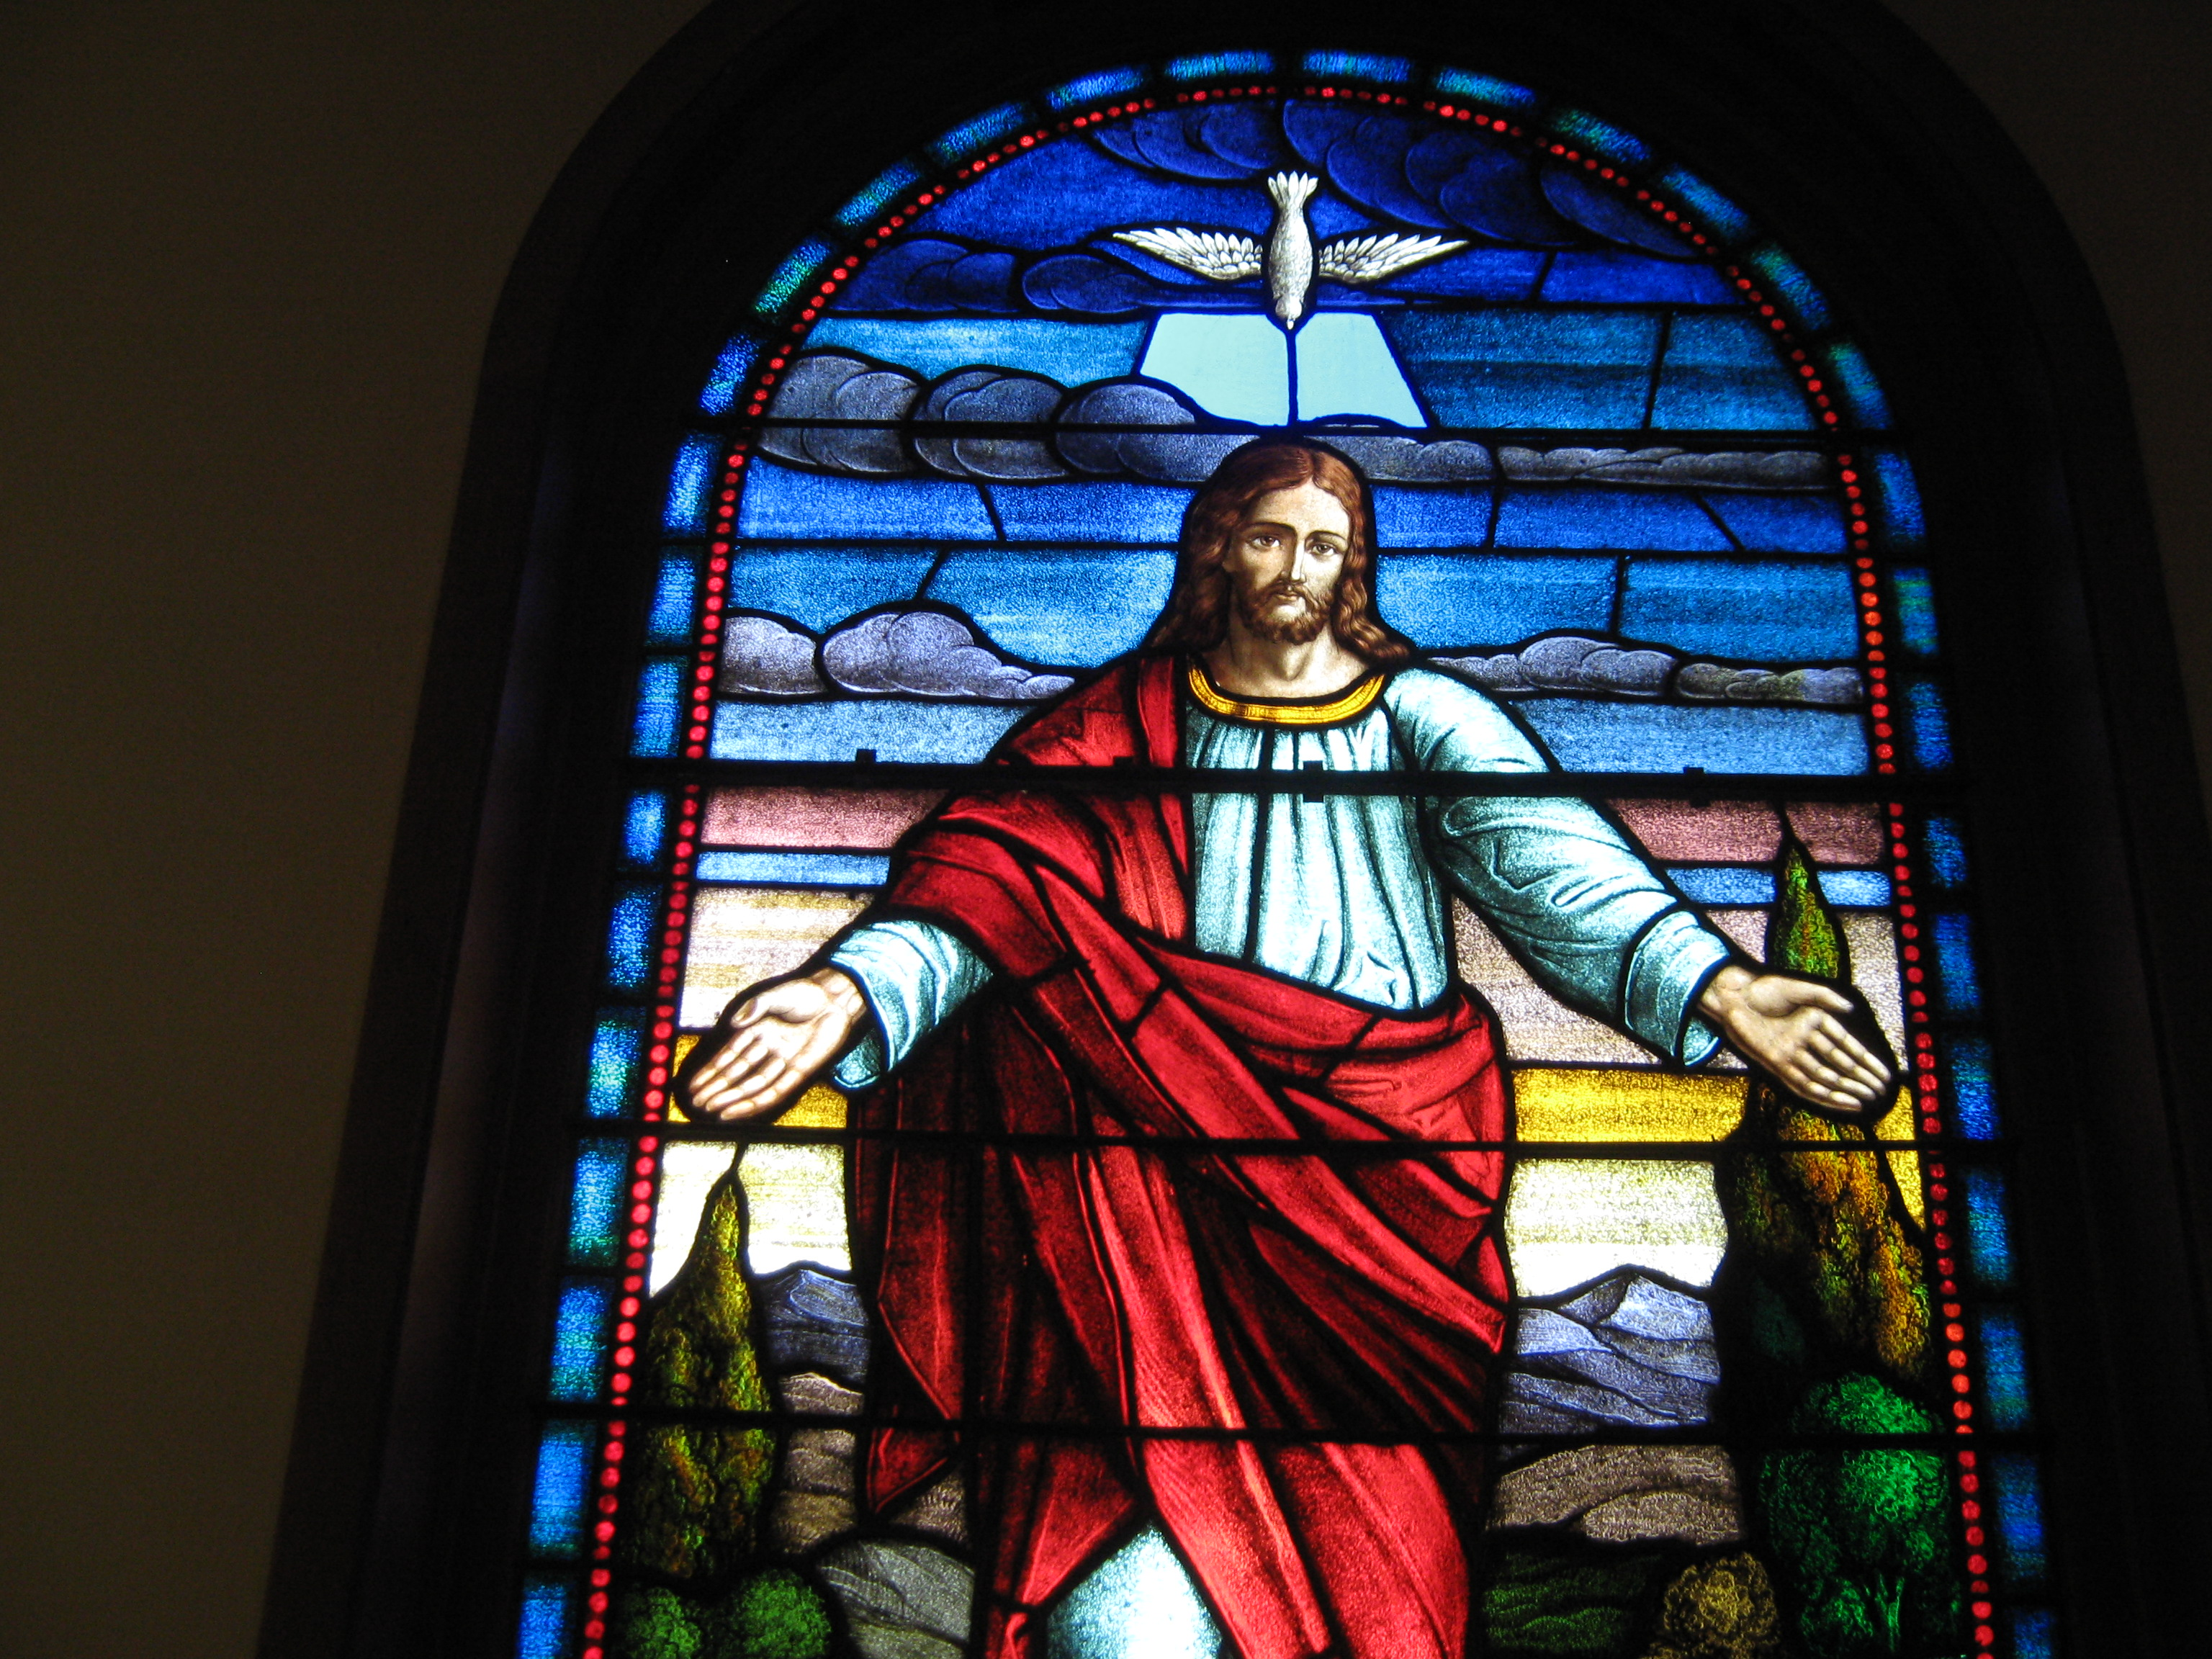 Jesus-with-Open-Arms-Stained-Glass-Window.JPG